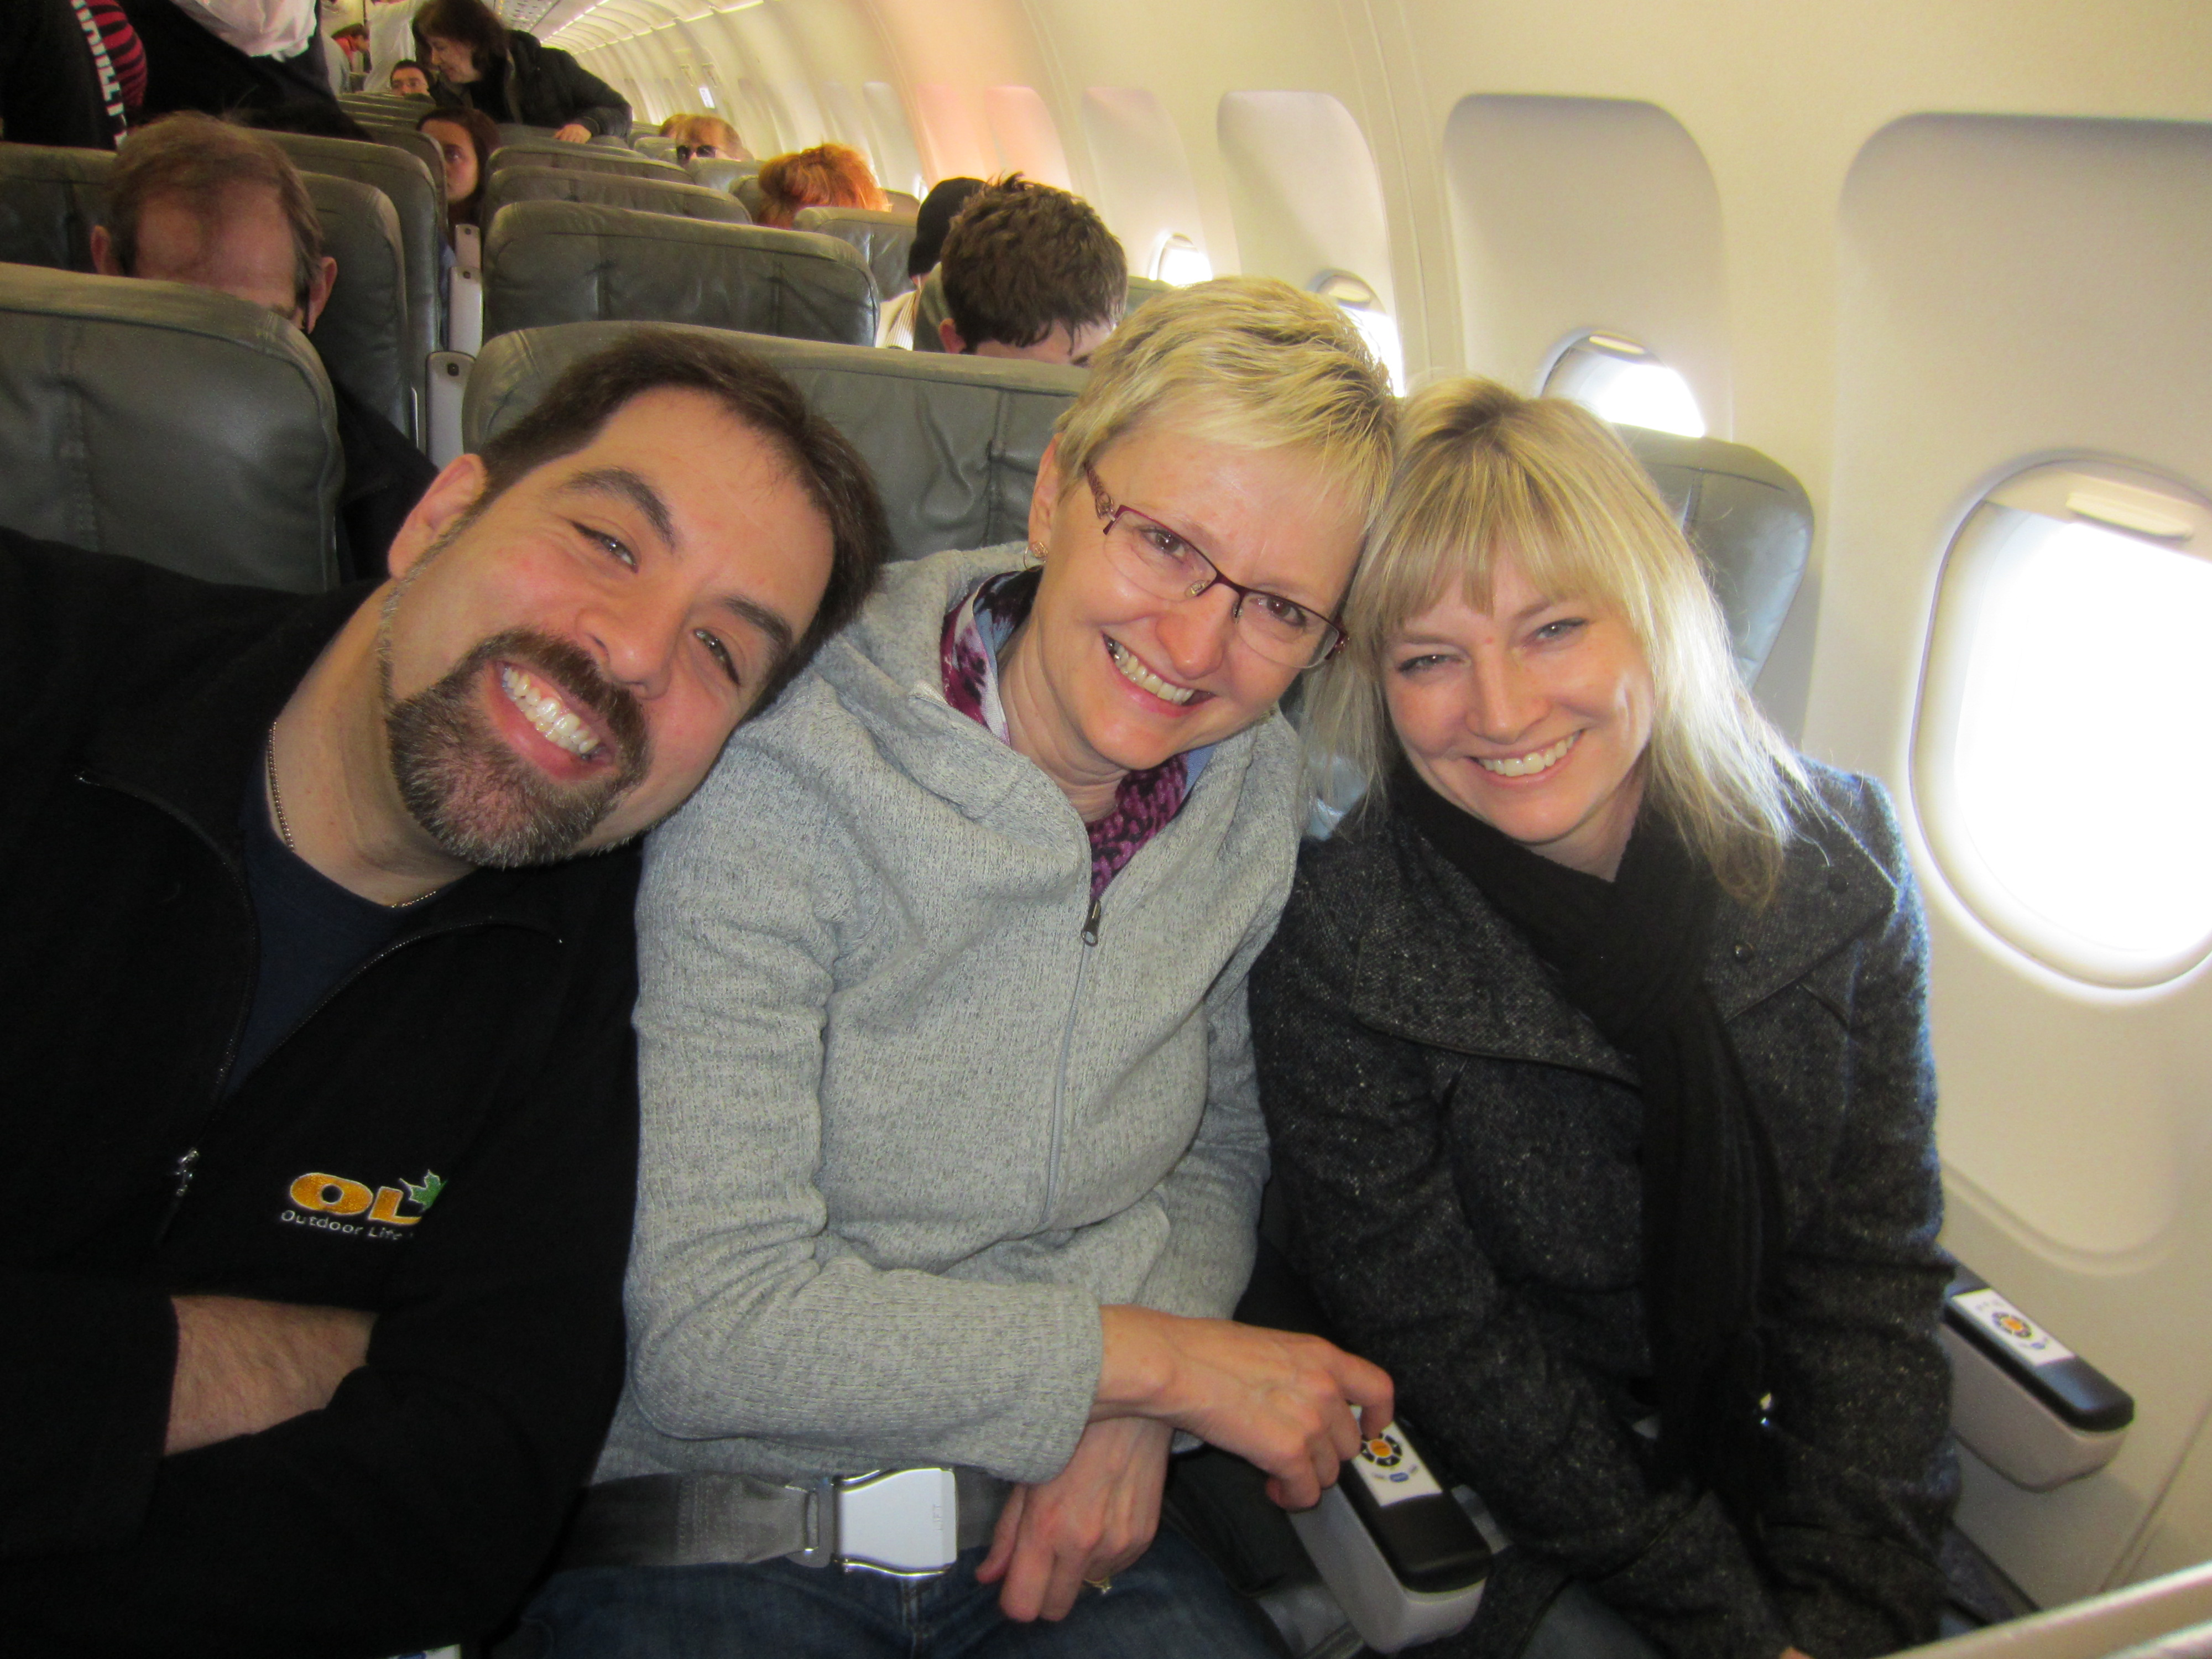 Dr. Isaacs, Sharon and Jeanette on their way to NYC